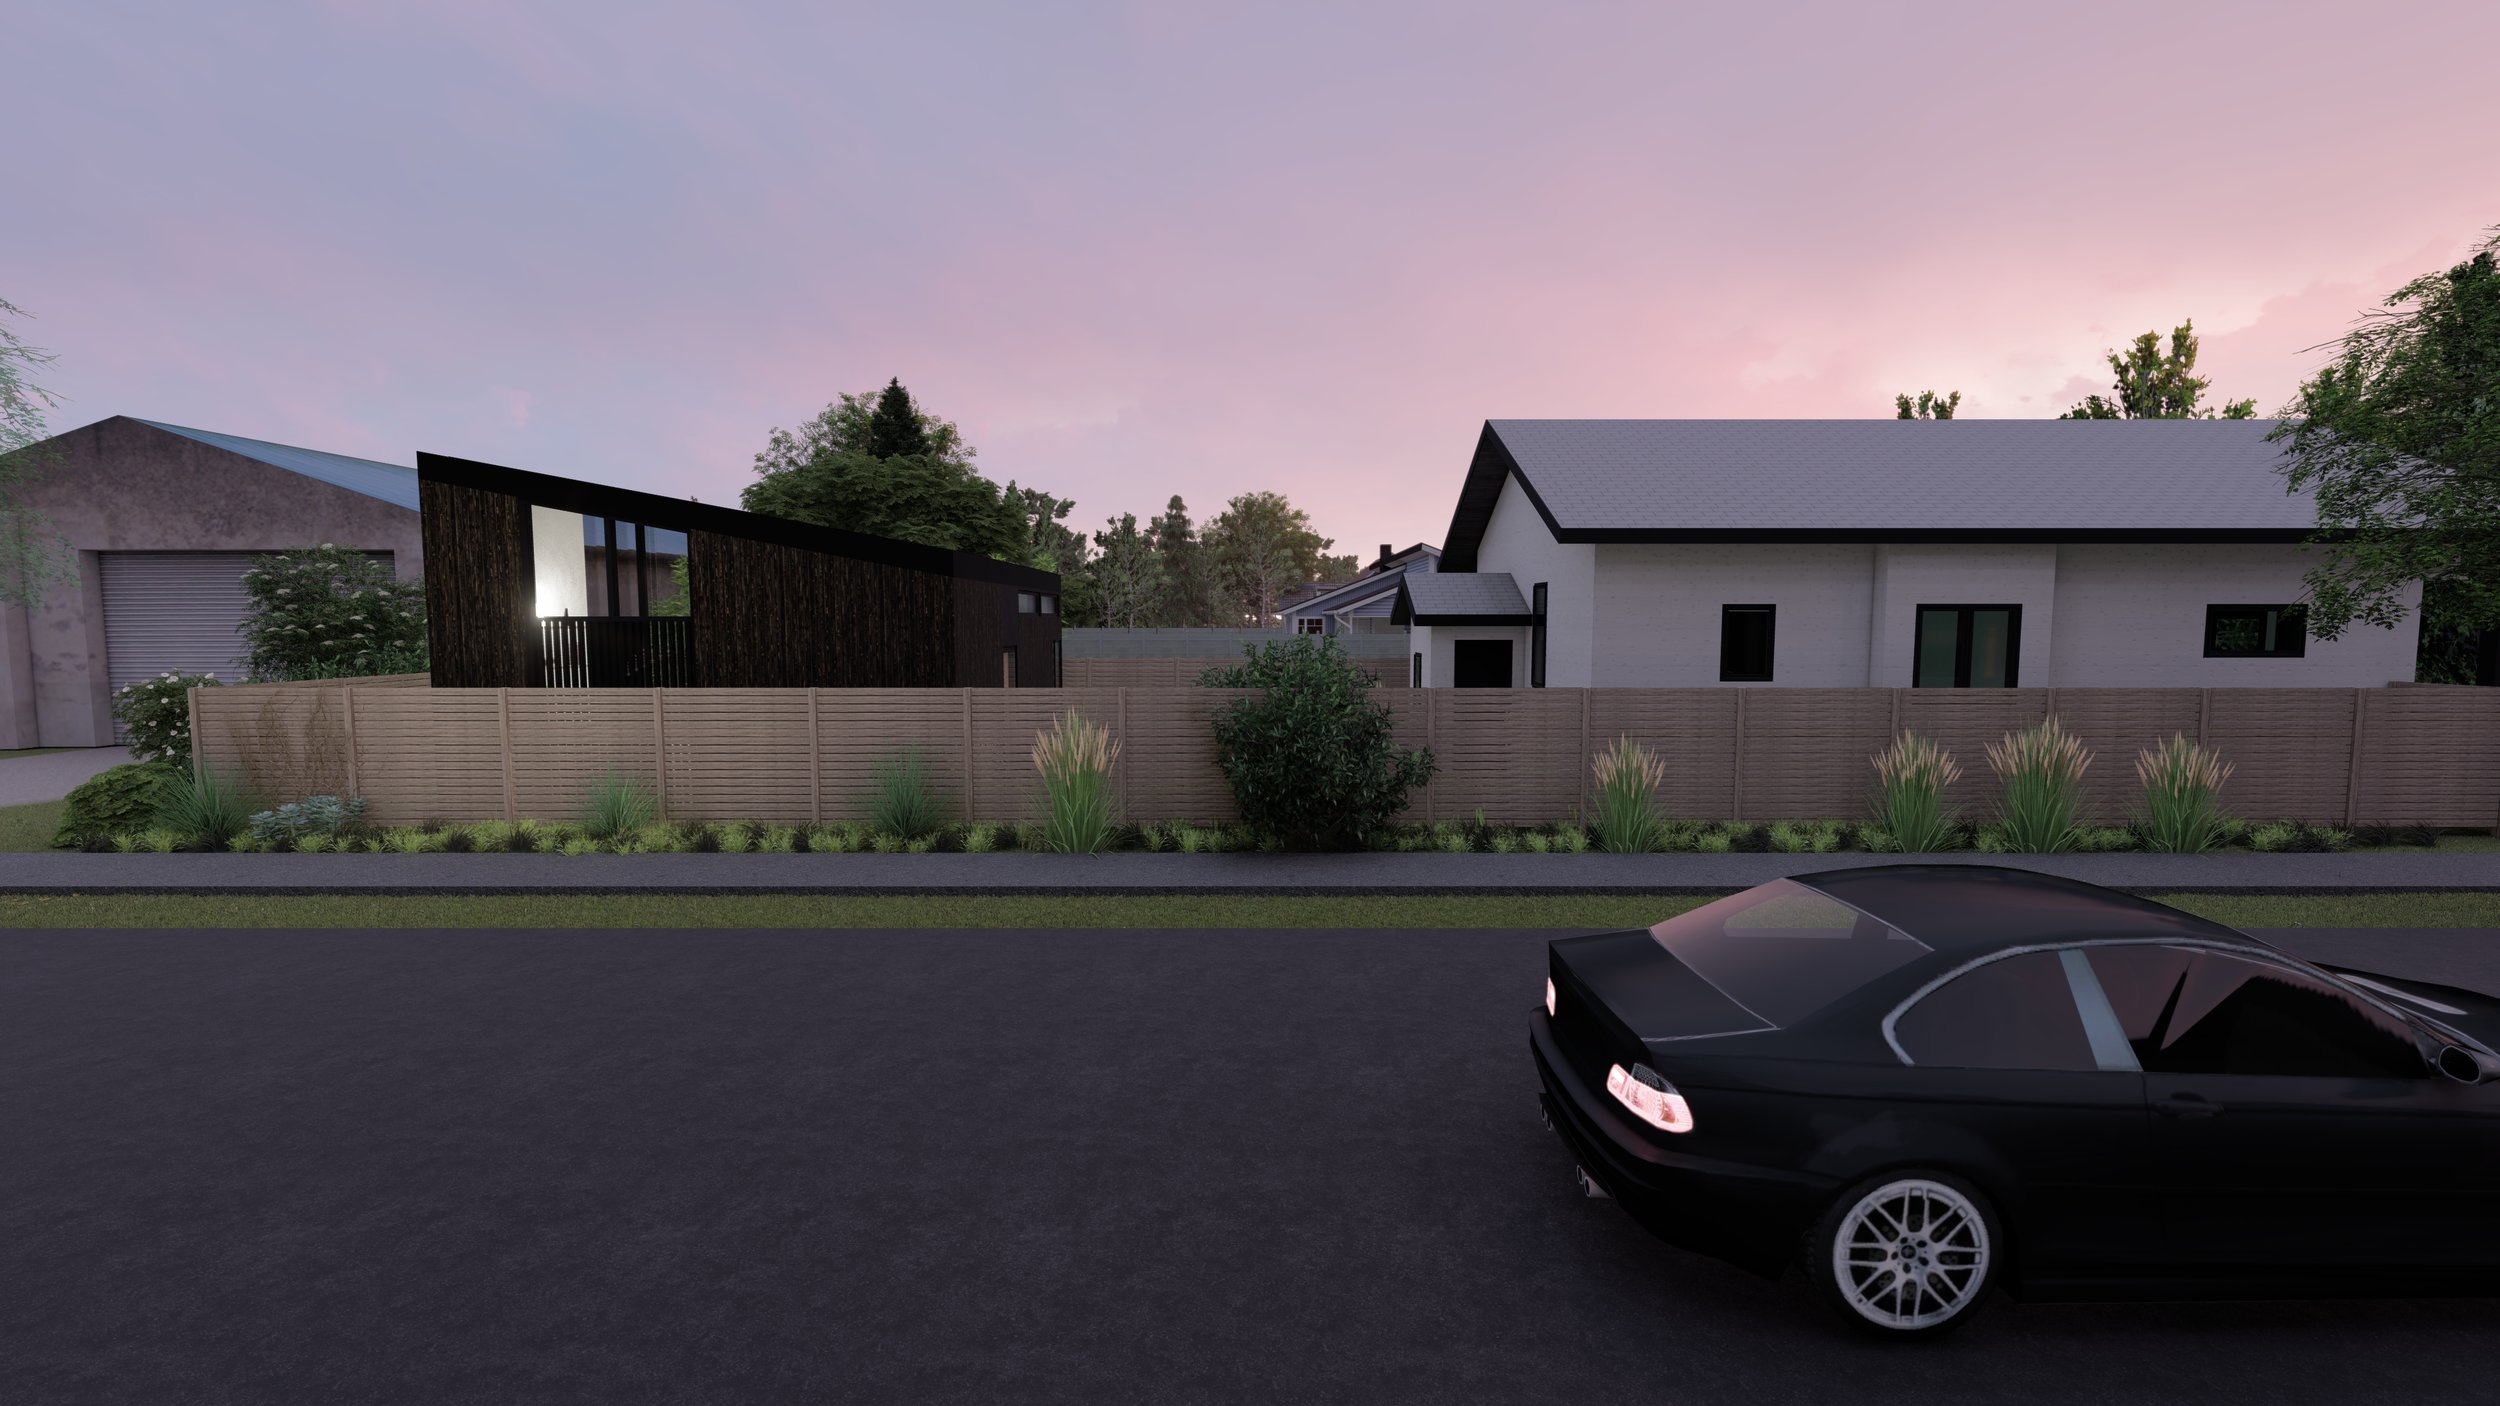 A rendering of what would become our shed roof ADU.